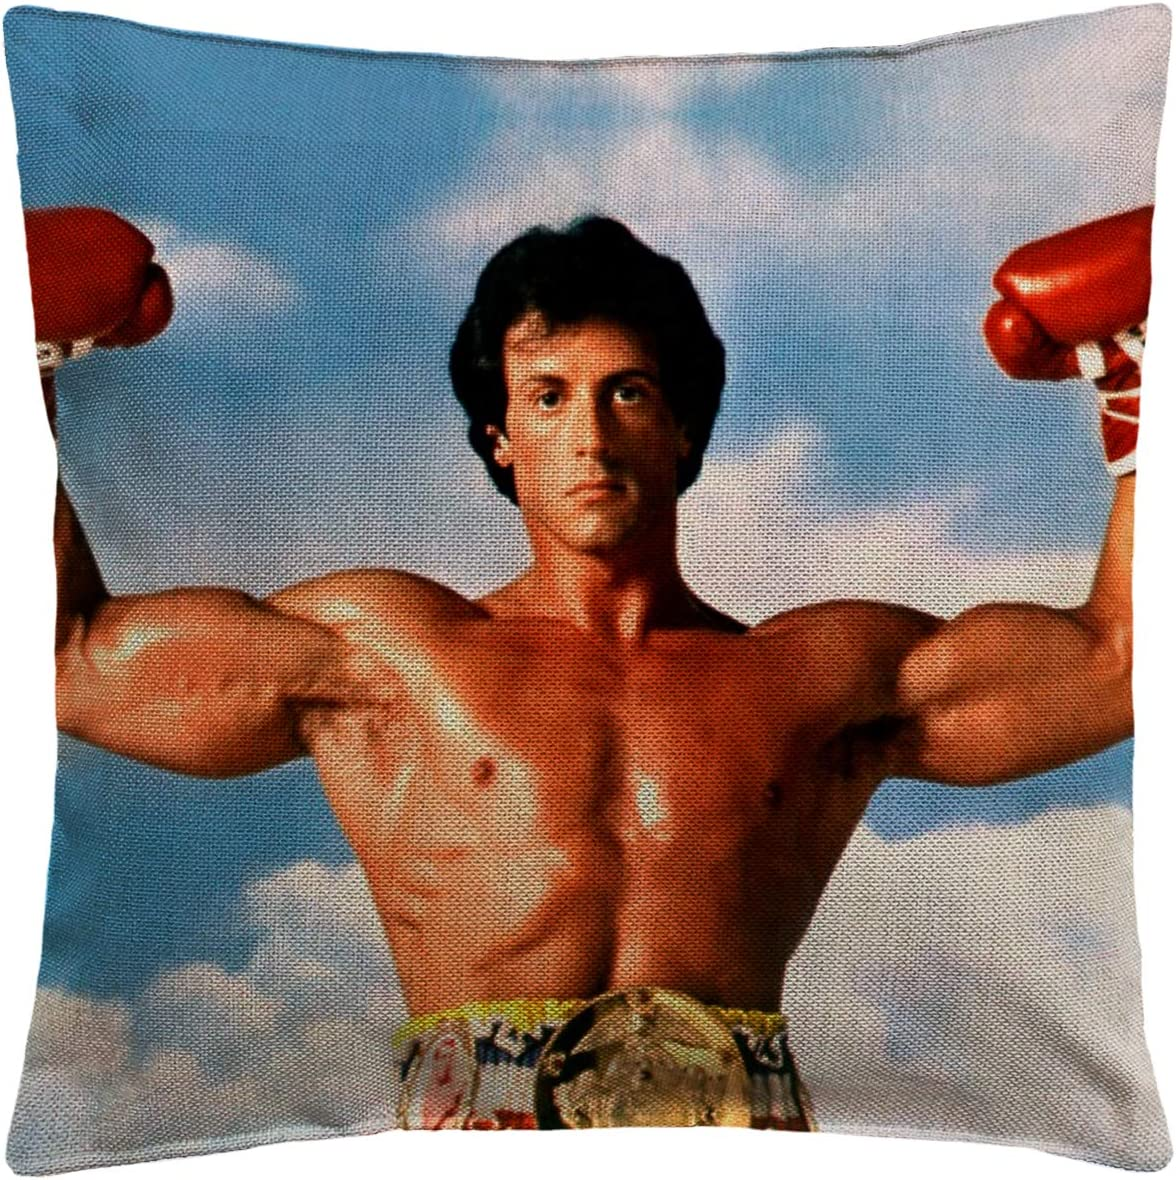 Balboa Rocky Boxing Funny Pillow, Throw Pillow for Home Office Decor, Cover Linen Lined Pillow Case, Cute Decorative Couch Pillow, House Warming Presents (Cover + Insert)